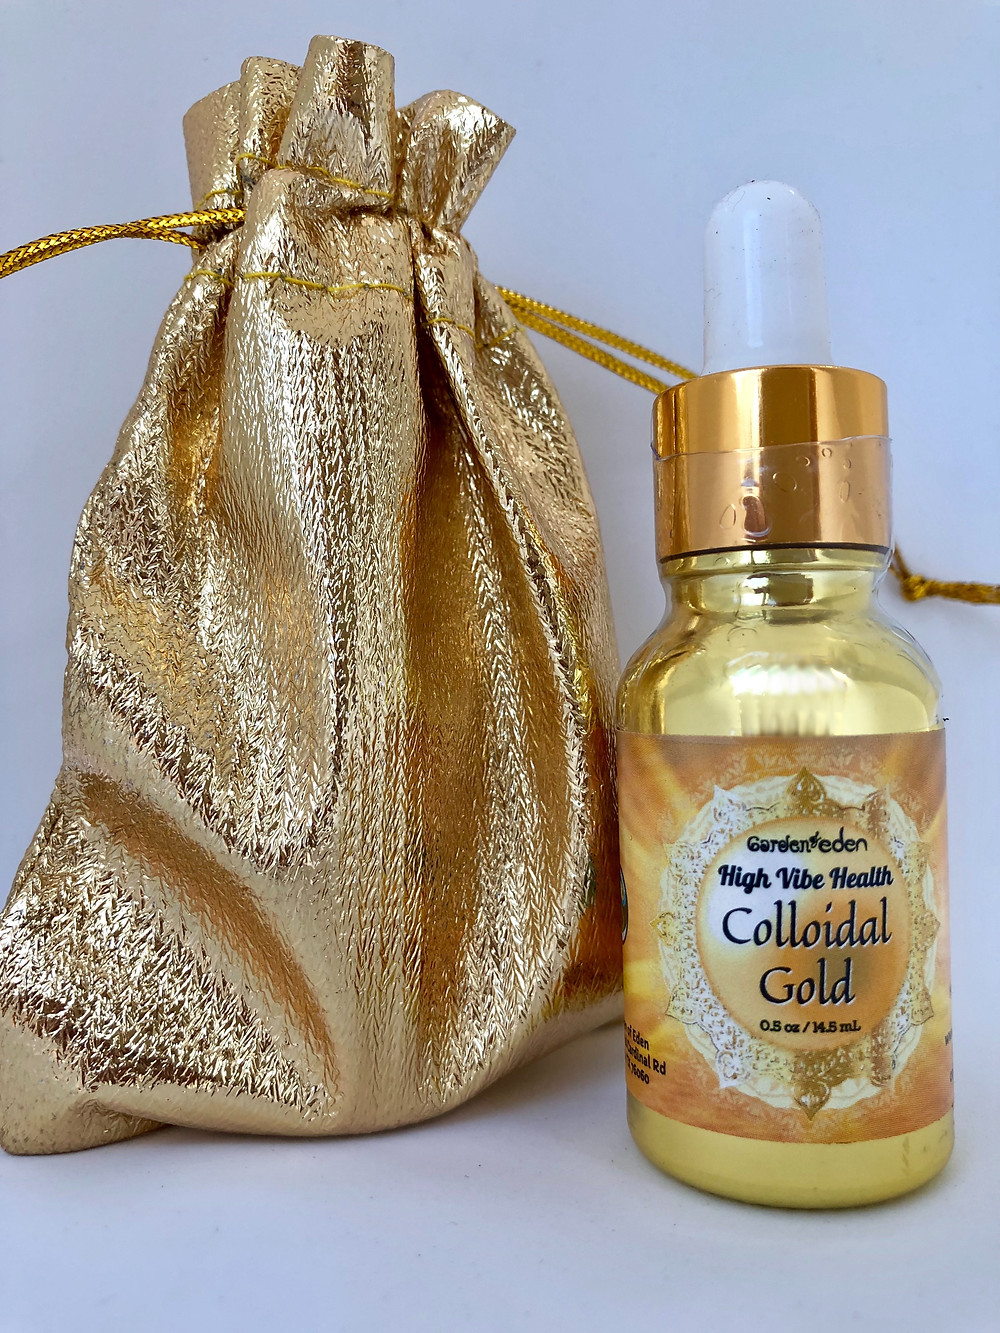 Colloidal Gold Garden of Eden